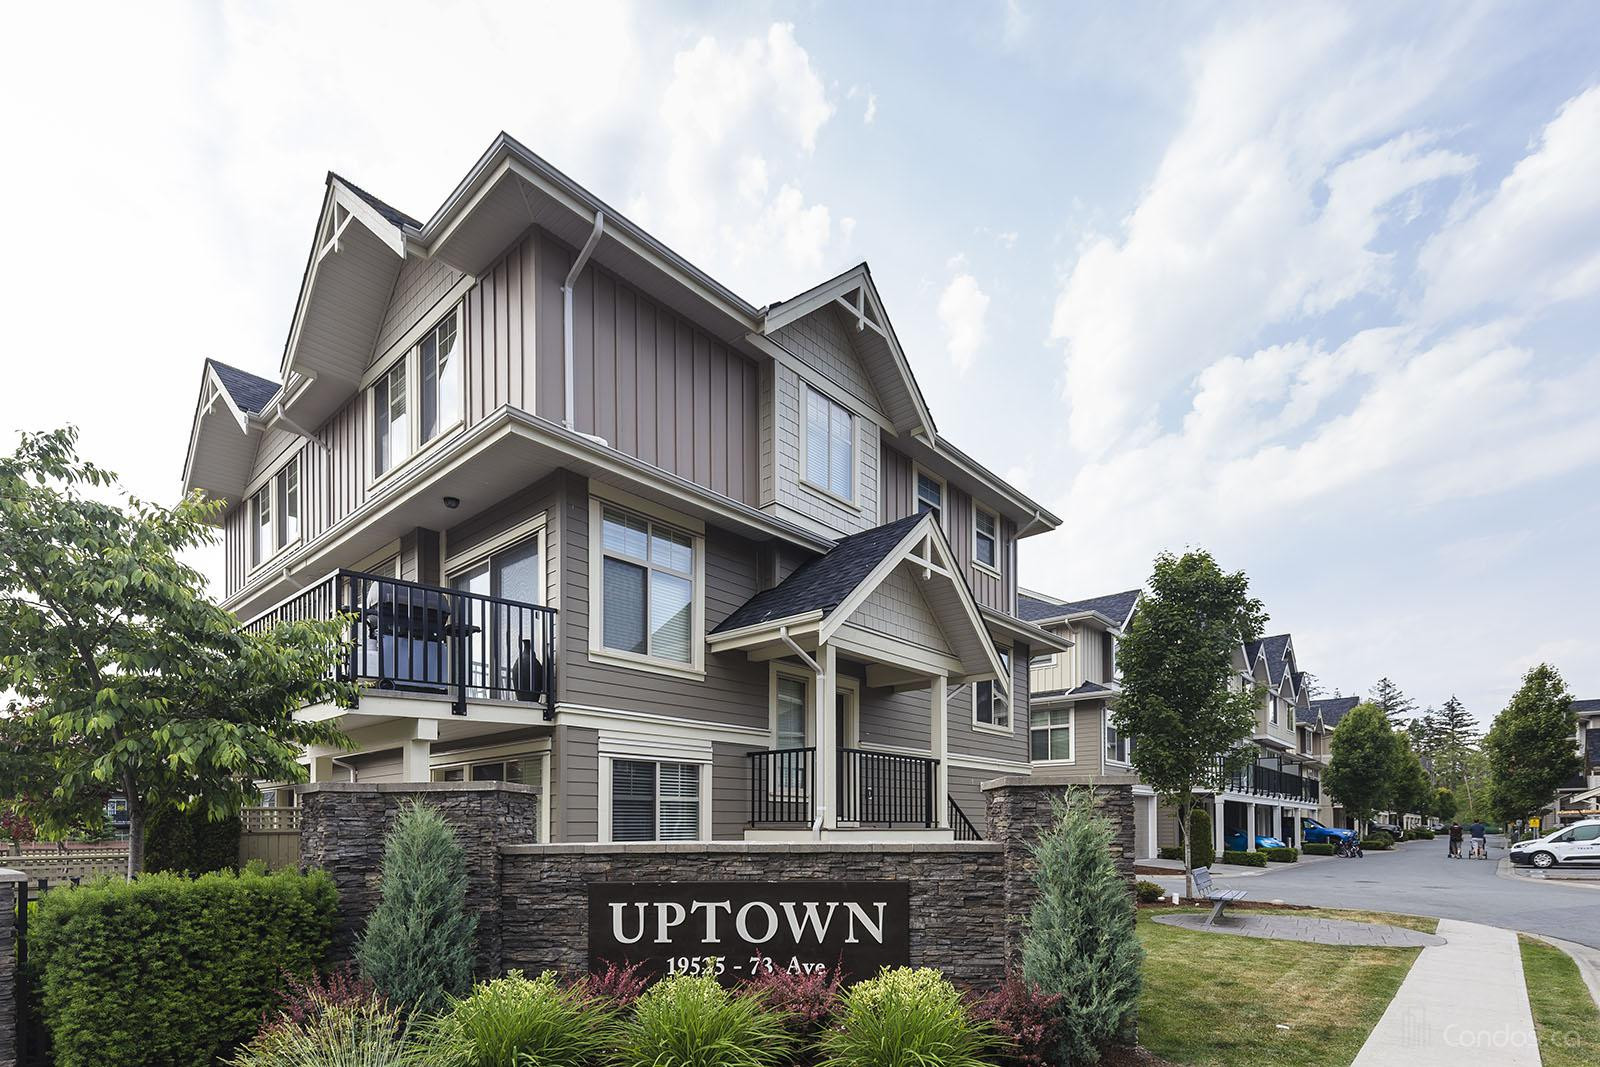 Uptown 2 at 19525 73 Ave, Surrey 0